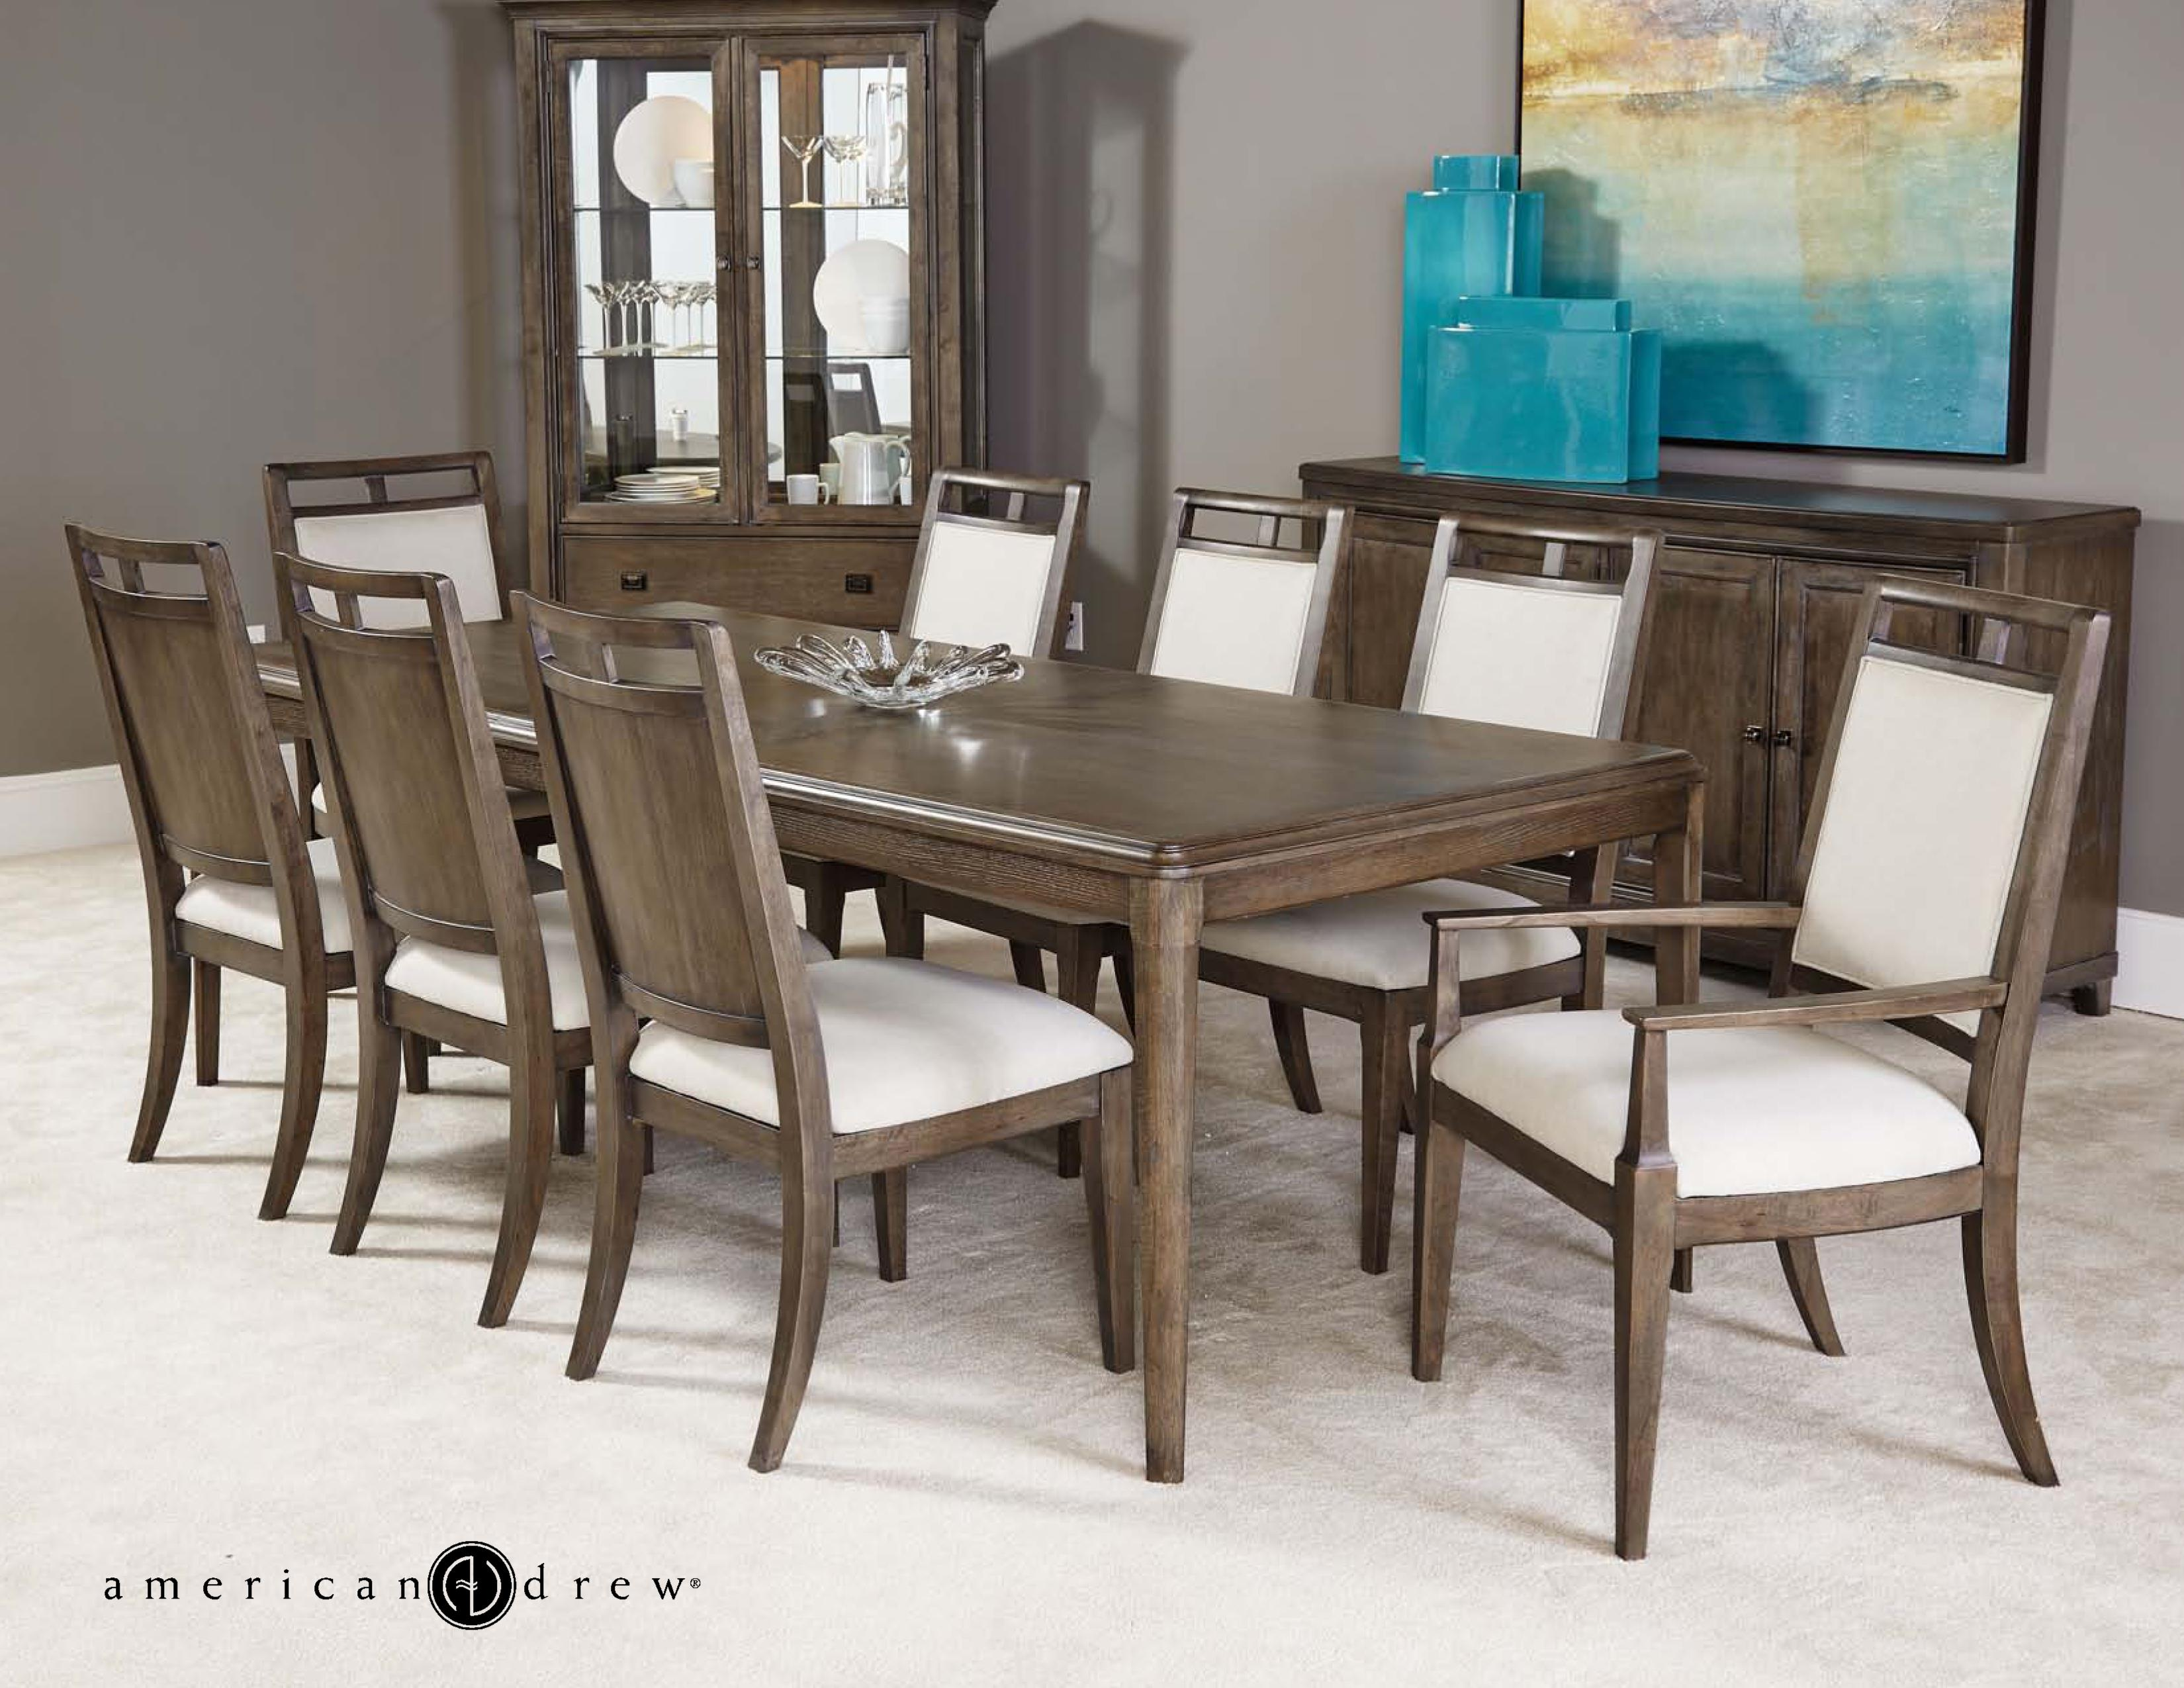 American drew park studio contemporary 9 piece dining room for American furniture dinette sets